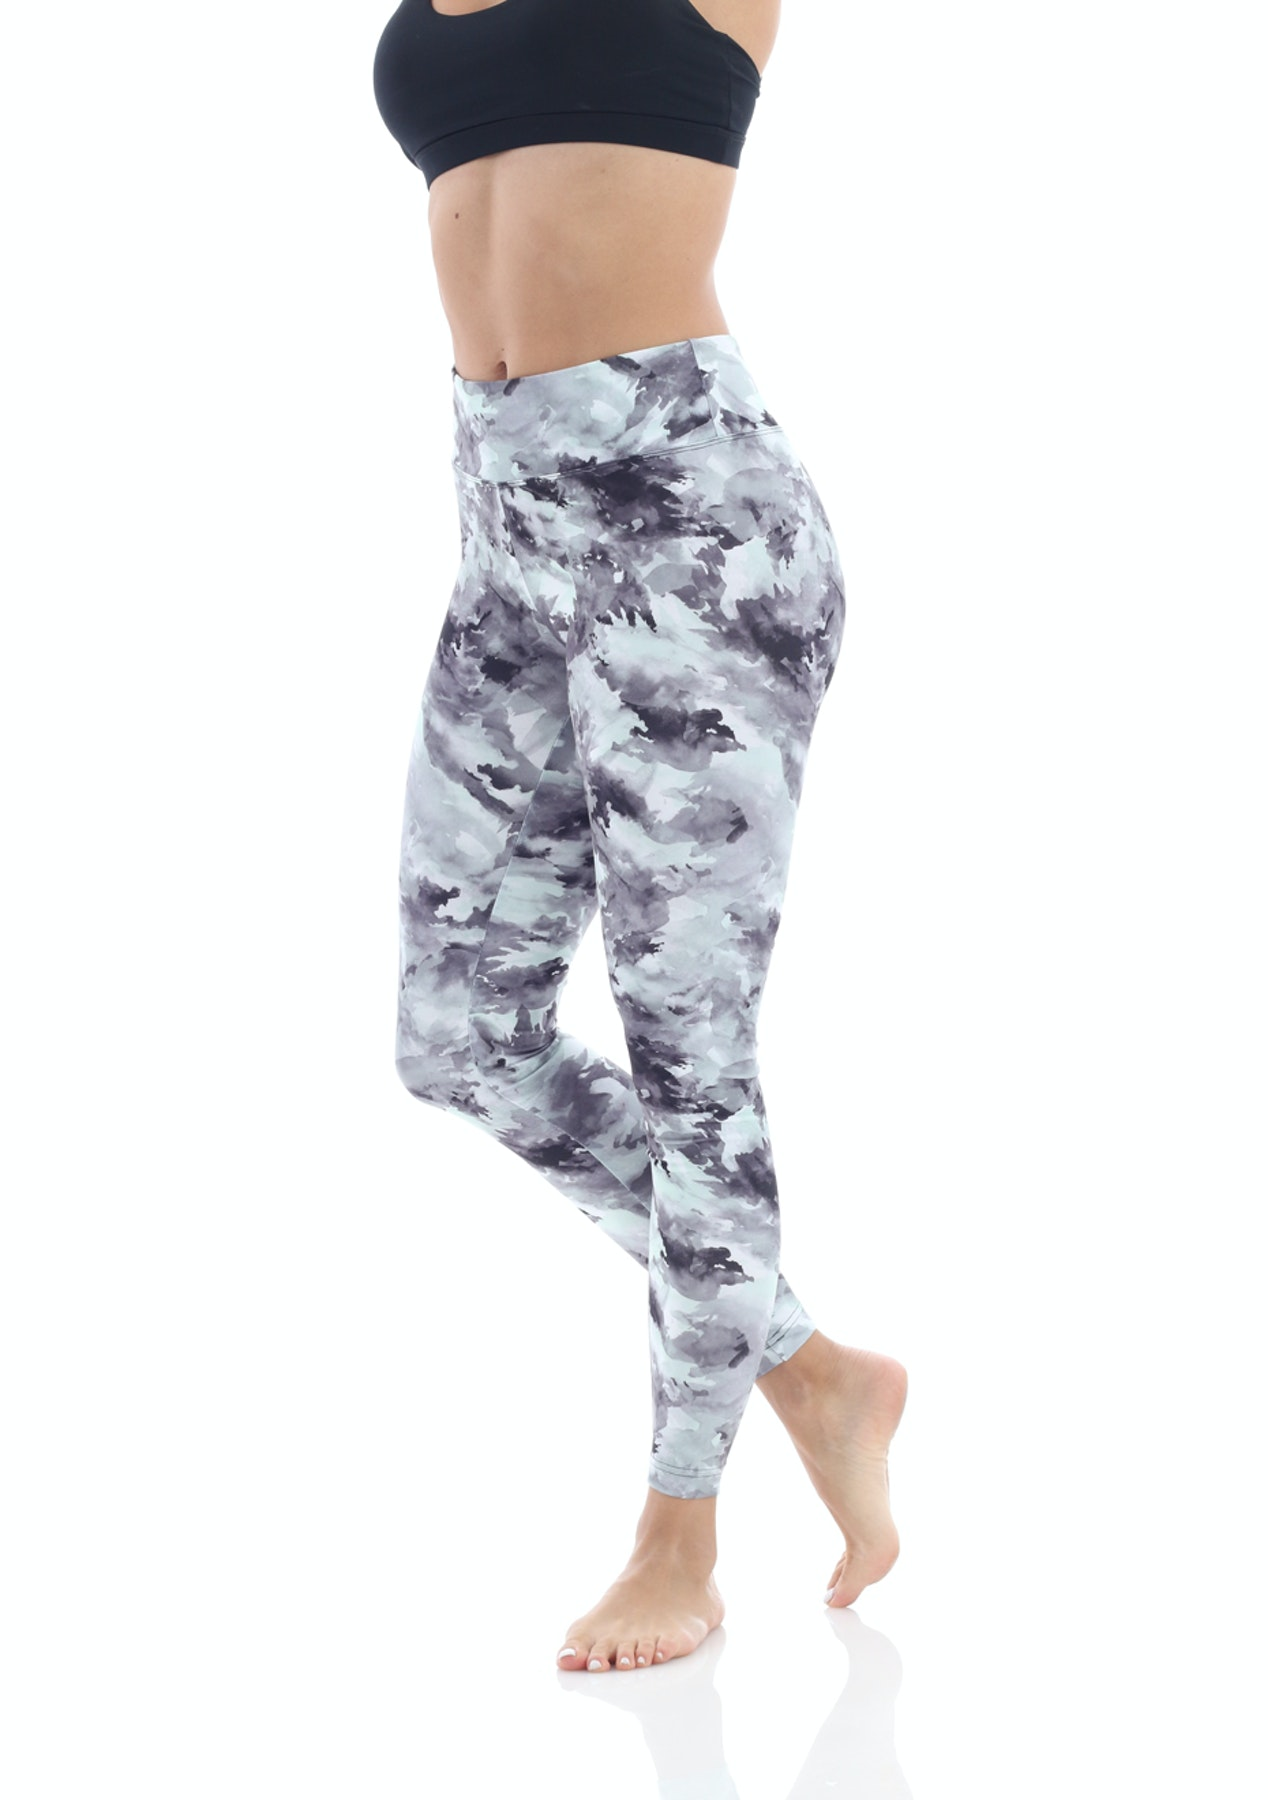 2d811f98222d46 Balance By Marika - Sanded Dry-Wik Printed Legging - 3B8 Grn Applemint M -  The Big Rummage Rack from $10 - Onceit